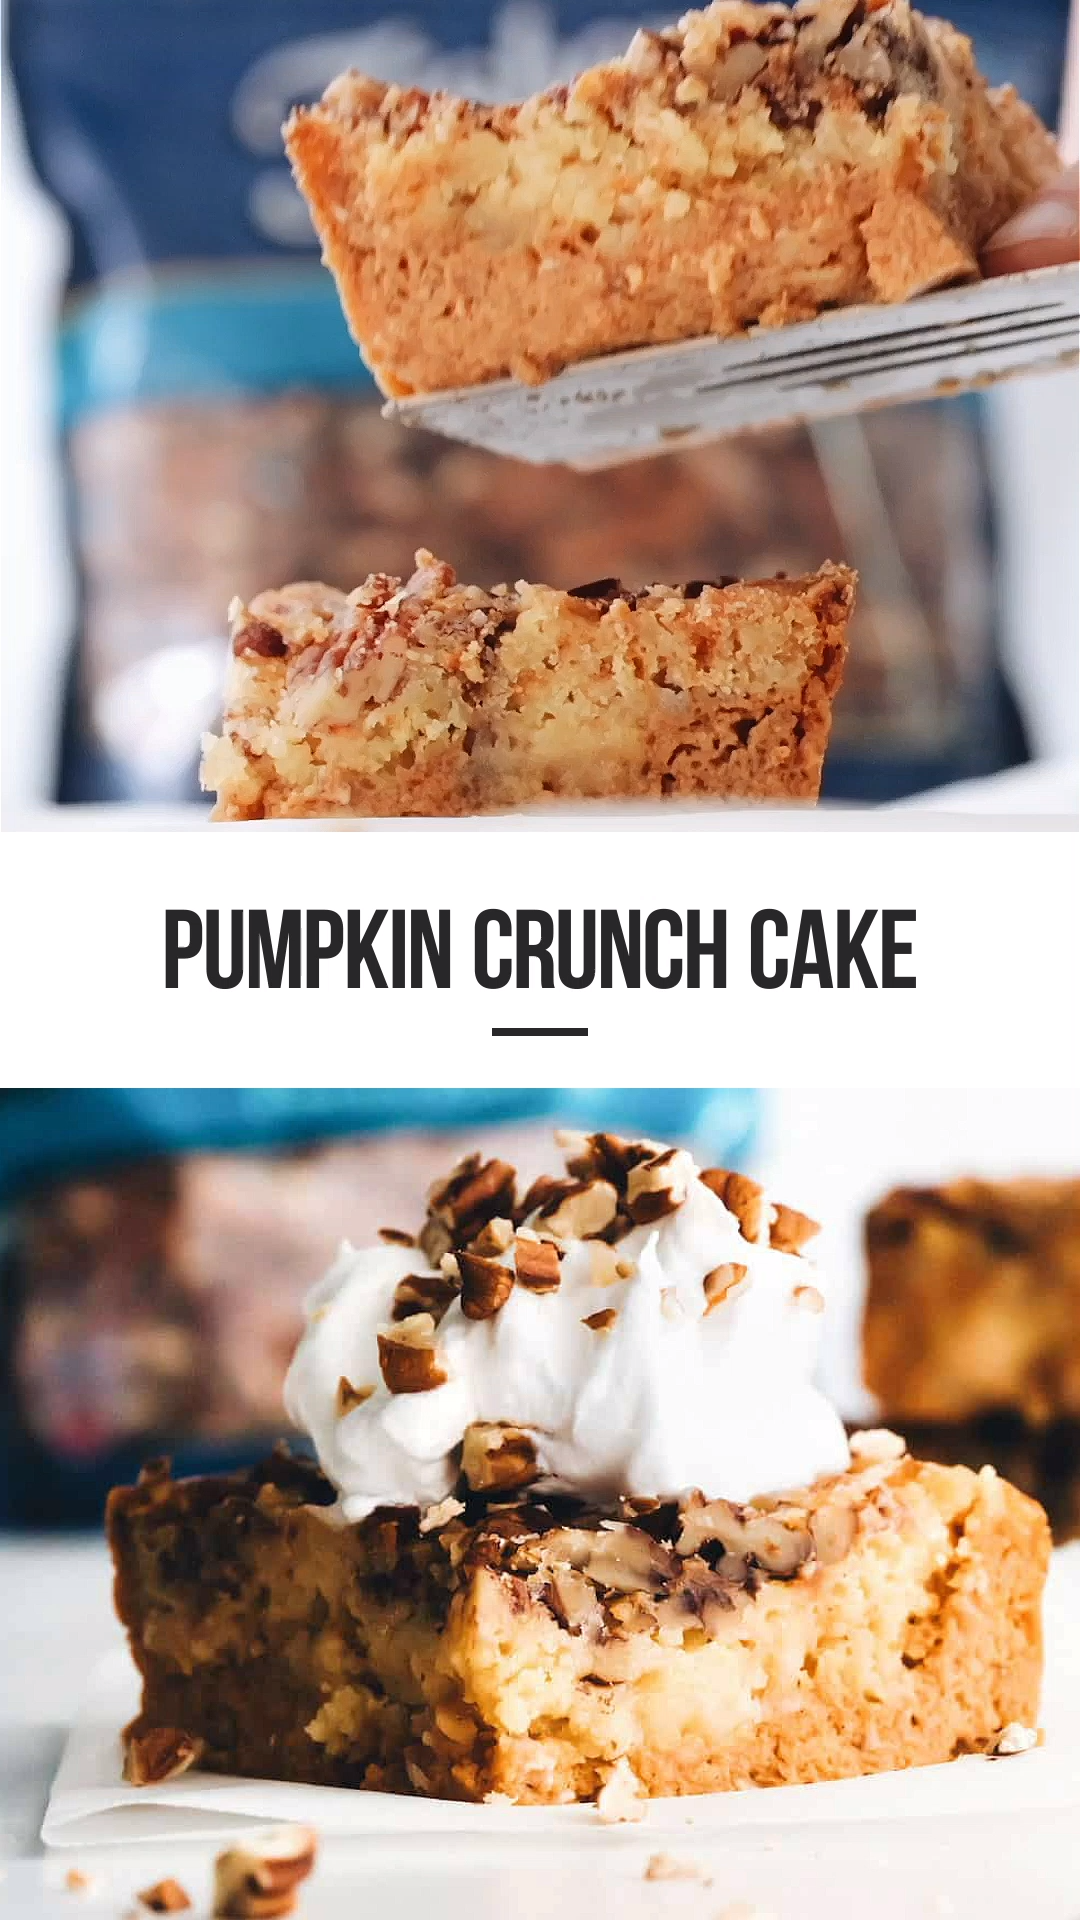 AD | Pumpkin Crunch Cake is brimming with fall flavors. Top each slice with a dollop of whipped cream and chopped pecans to create the perfect pumpkin dessert! Sponsored by Fisher Nuts